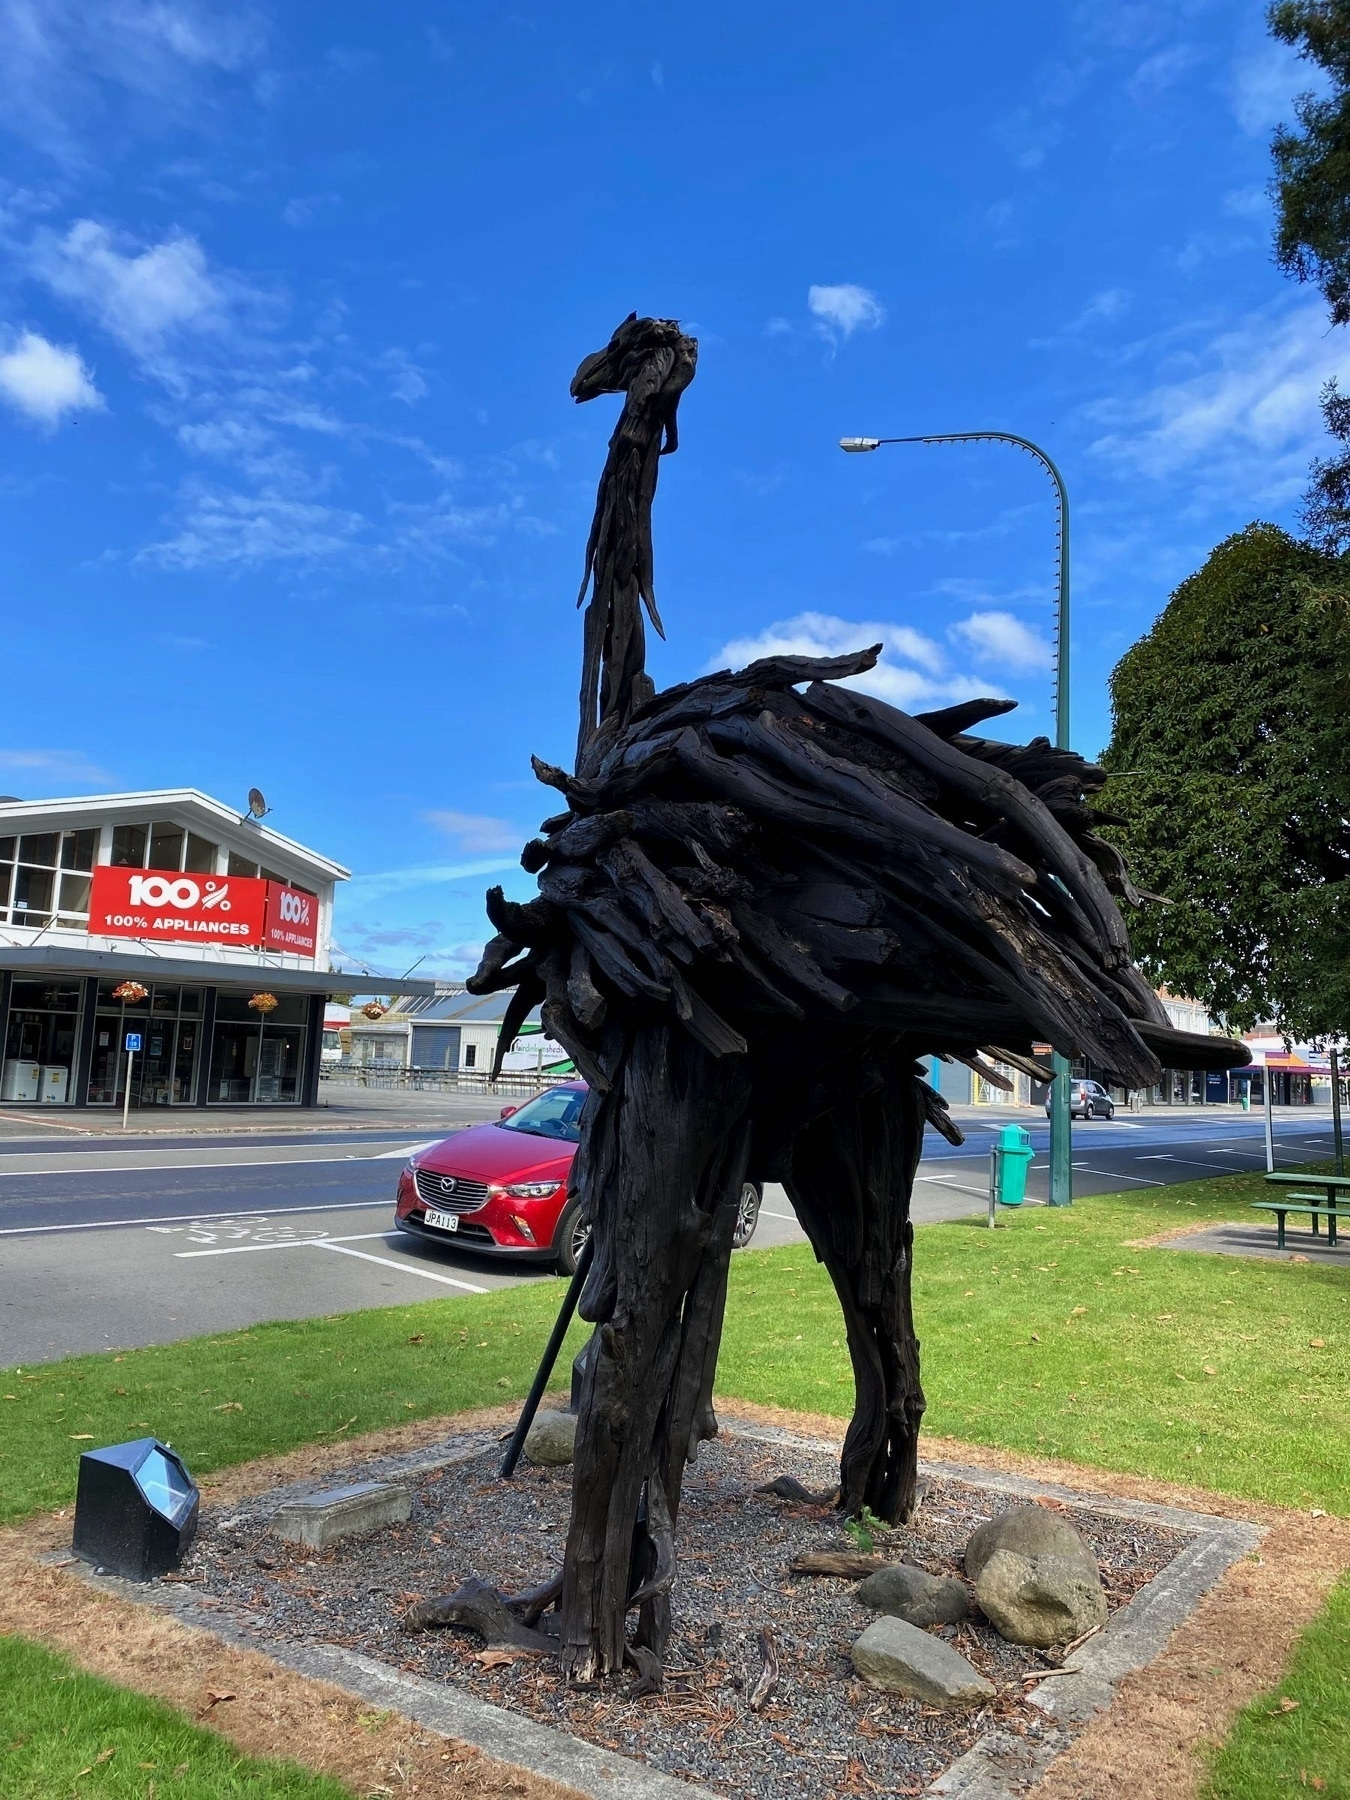 Lifesize moa sculpture, 2 or 3 metres tall, from another angle.